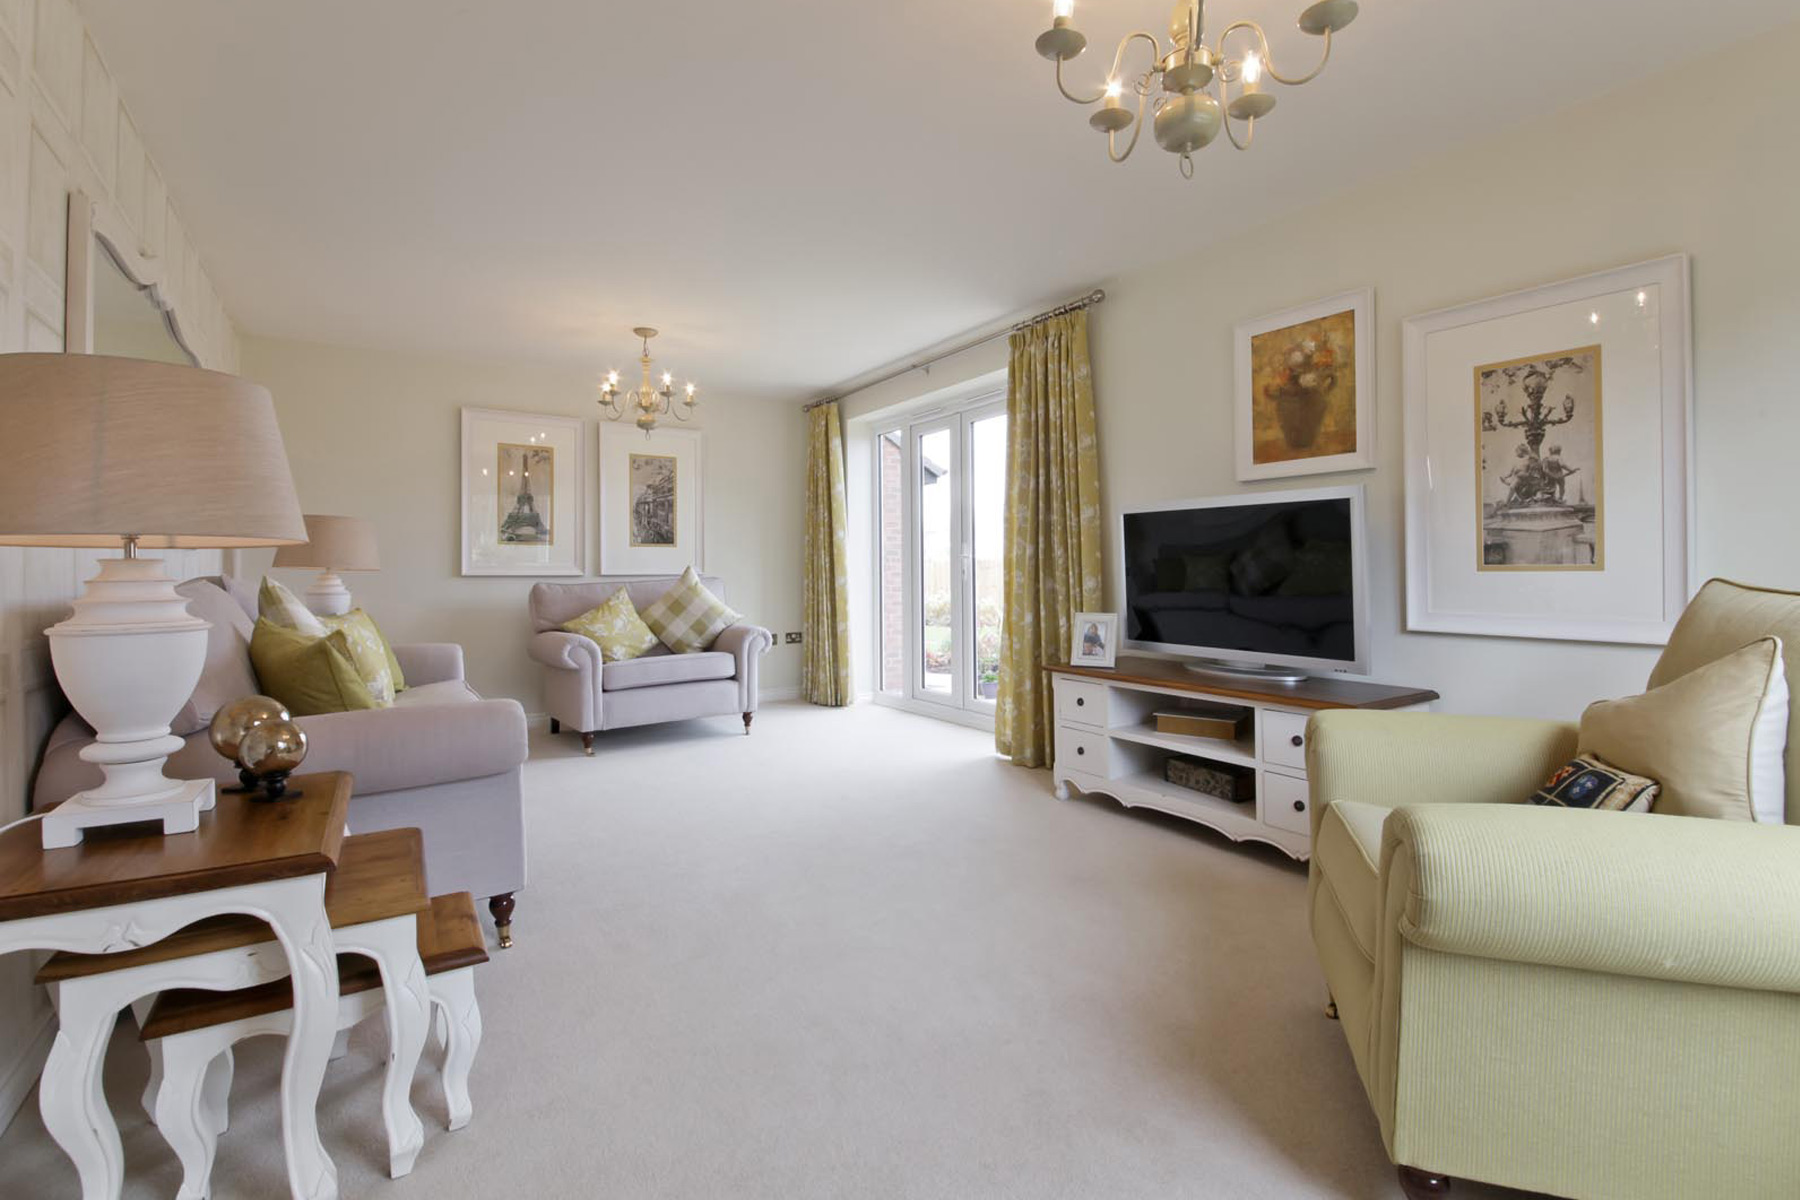 TW Exeter - Cranbrook - Tildale example living room